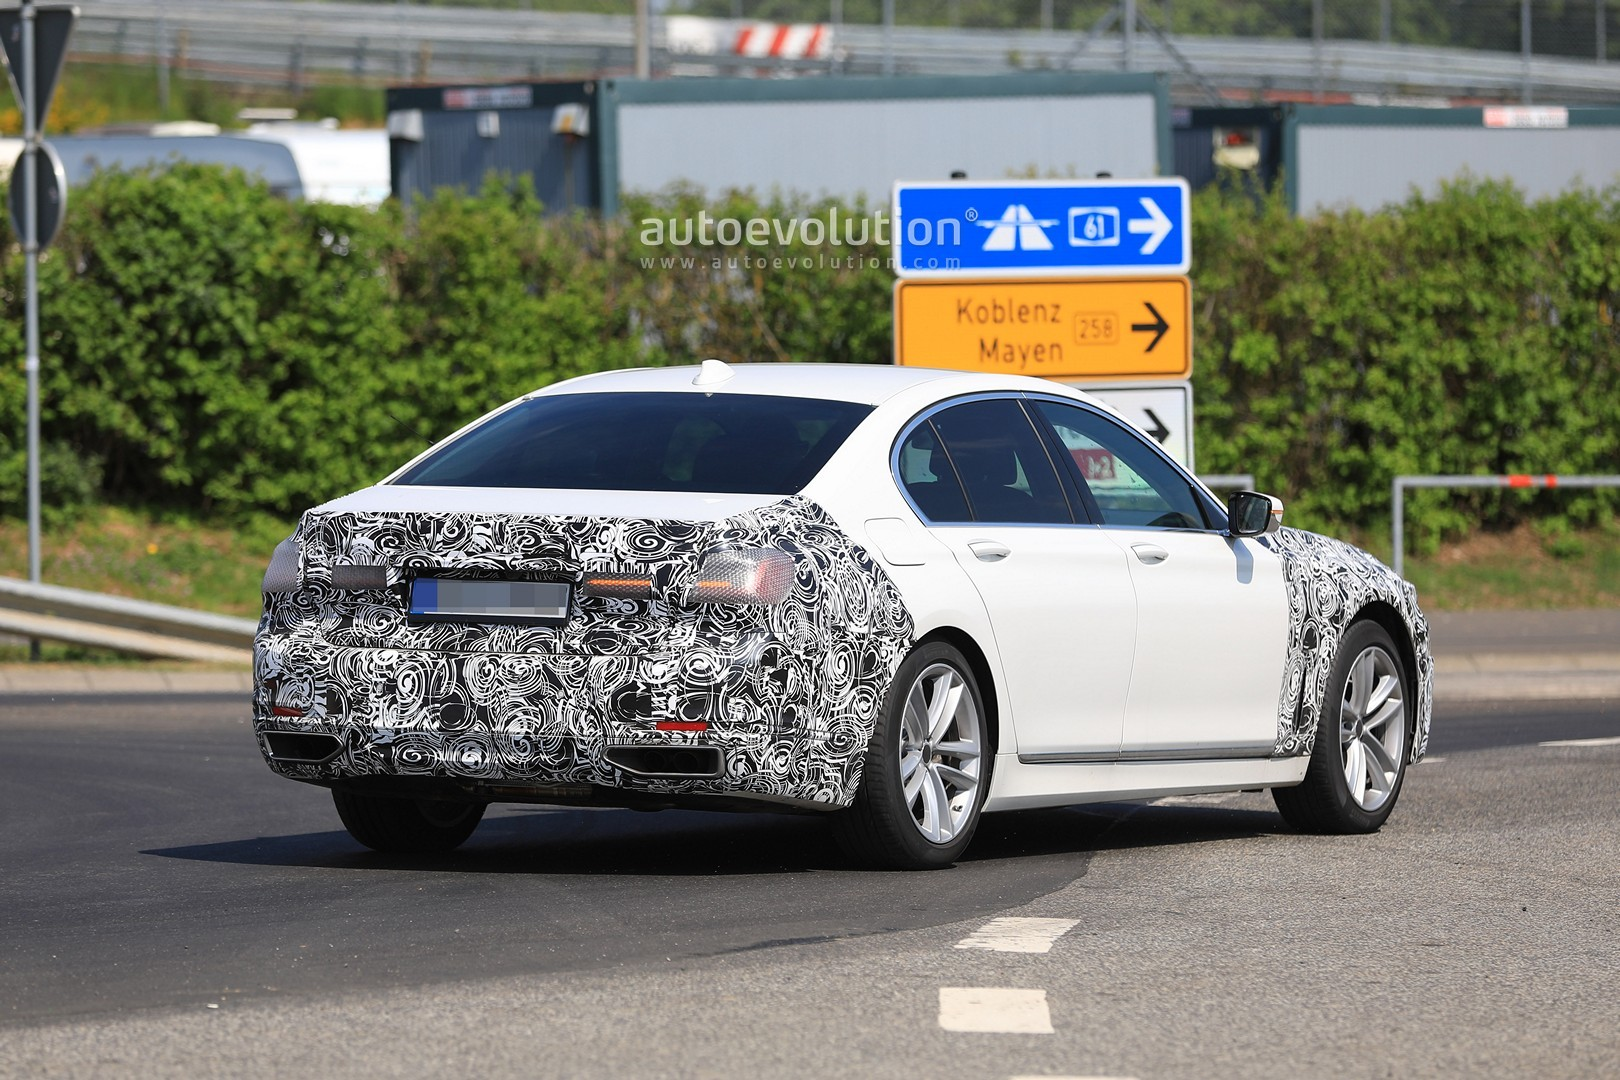 2020 Bmw 7 Series Facelift Gets Quot Pig Nose Quot Face Thanks To X7 Grille Infusion Autoevolution